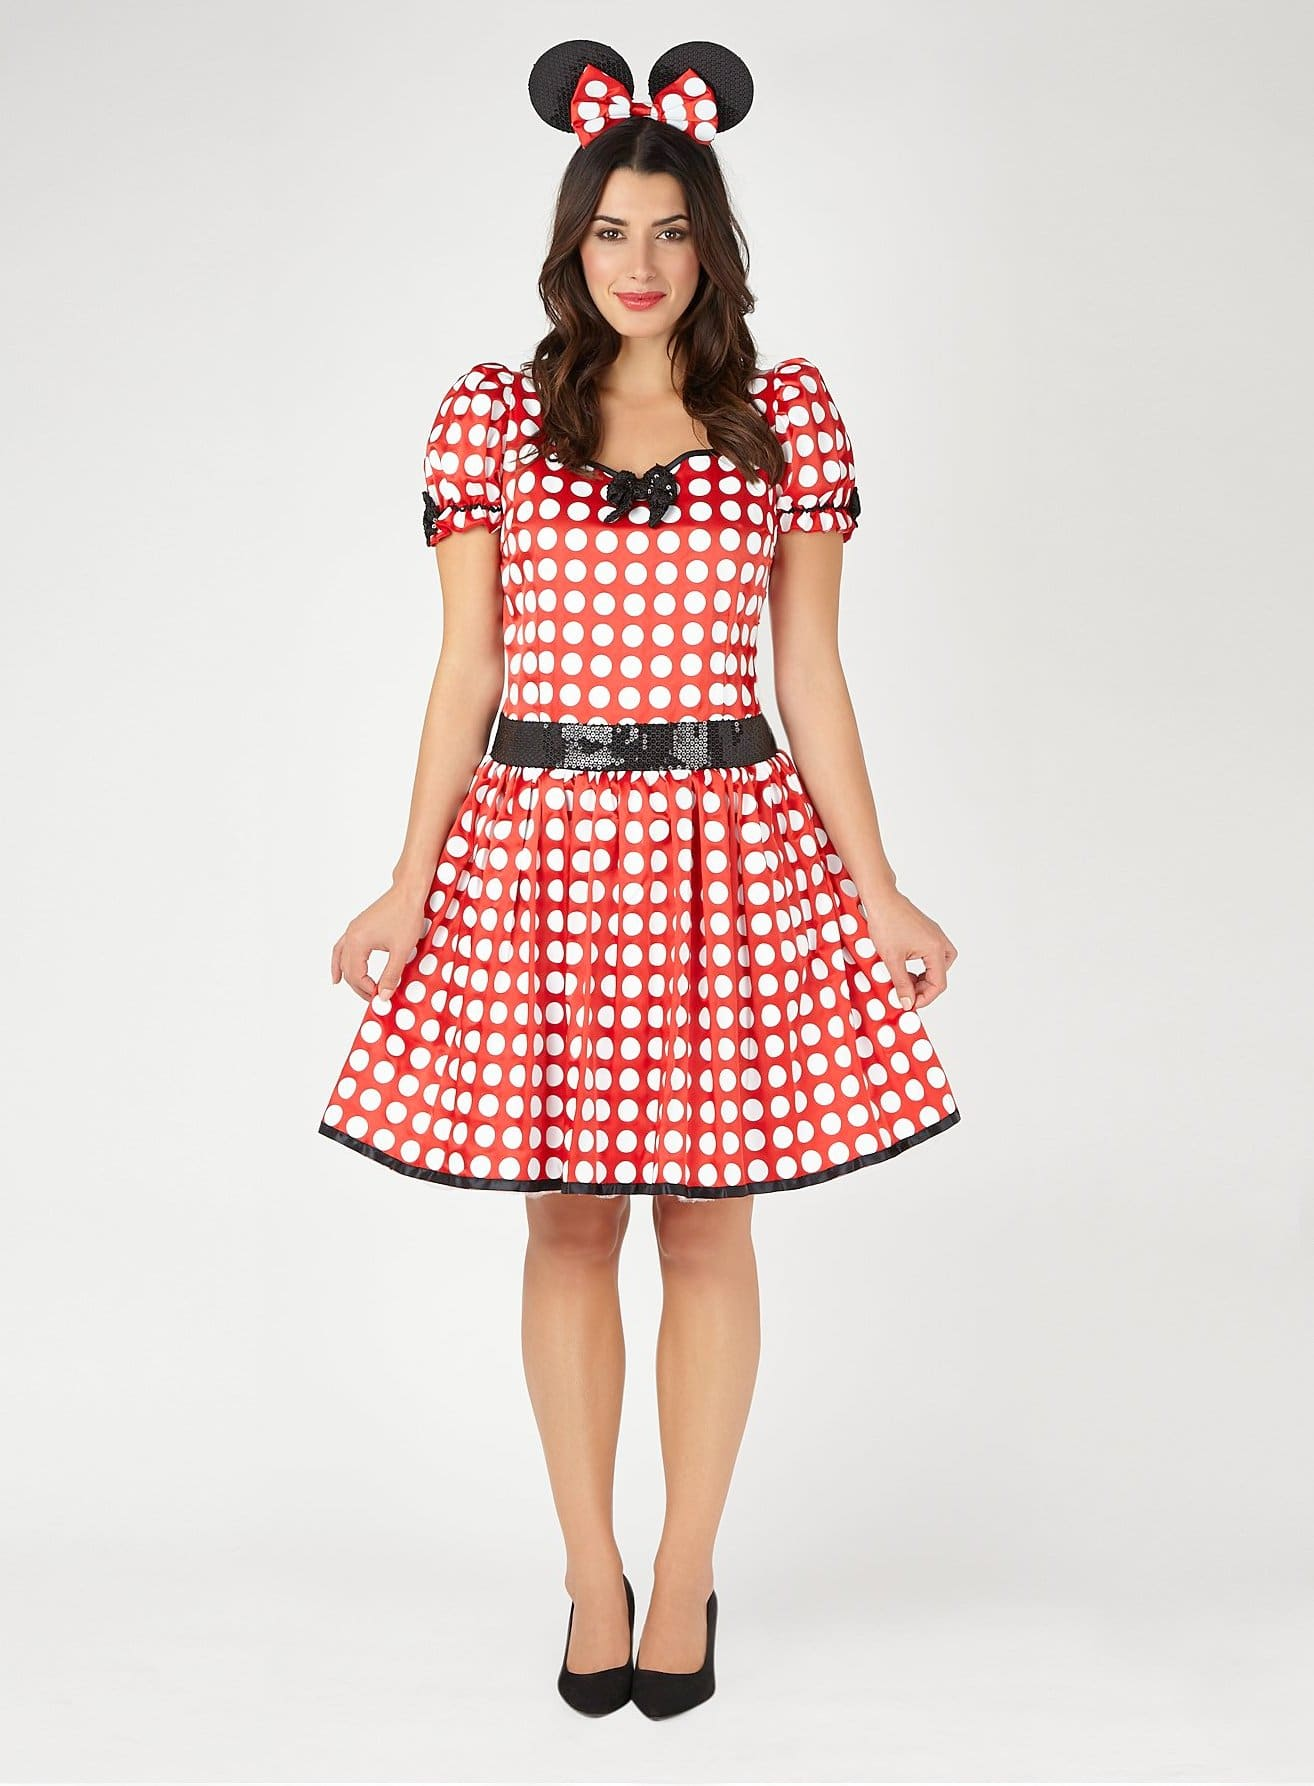 Minnie Mouse Dress,Outfit And Costume Idea